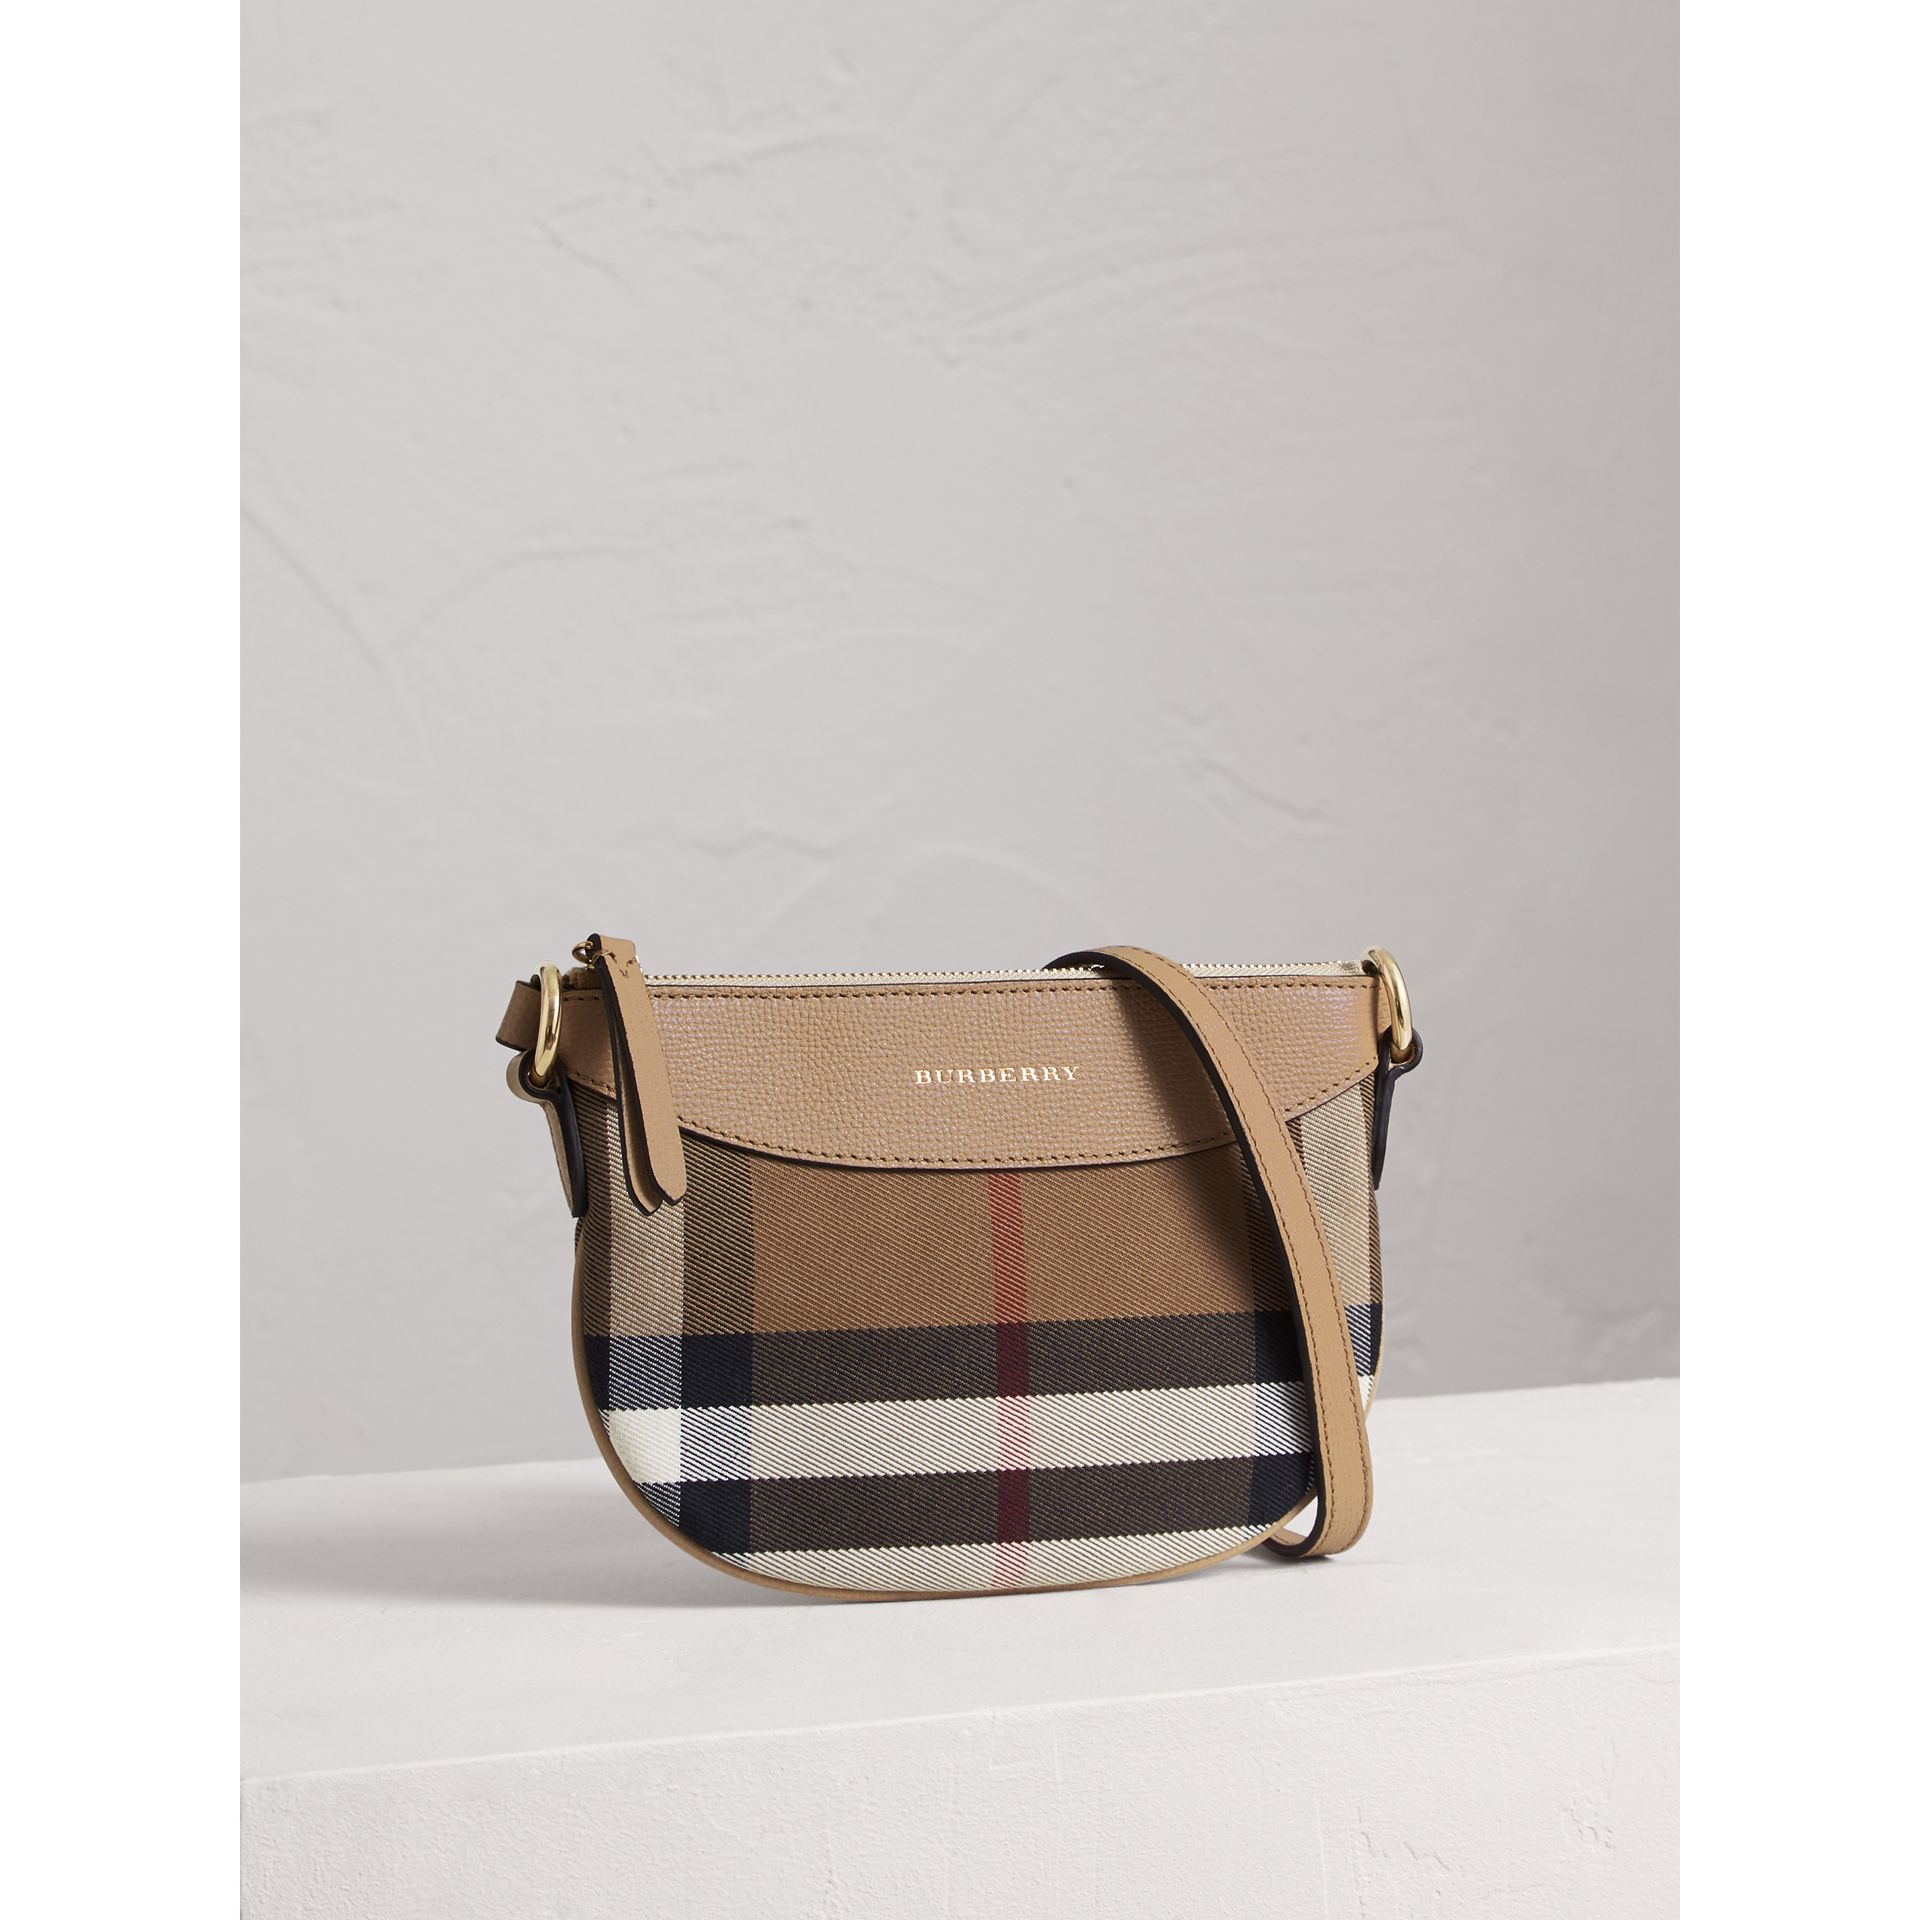 Sac à bandoulière en coton House check et cuir (Chino) - Fille | Burberry - photo de la galerie 4